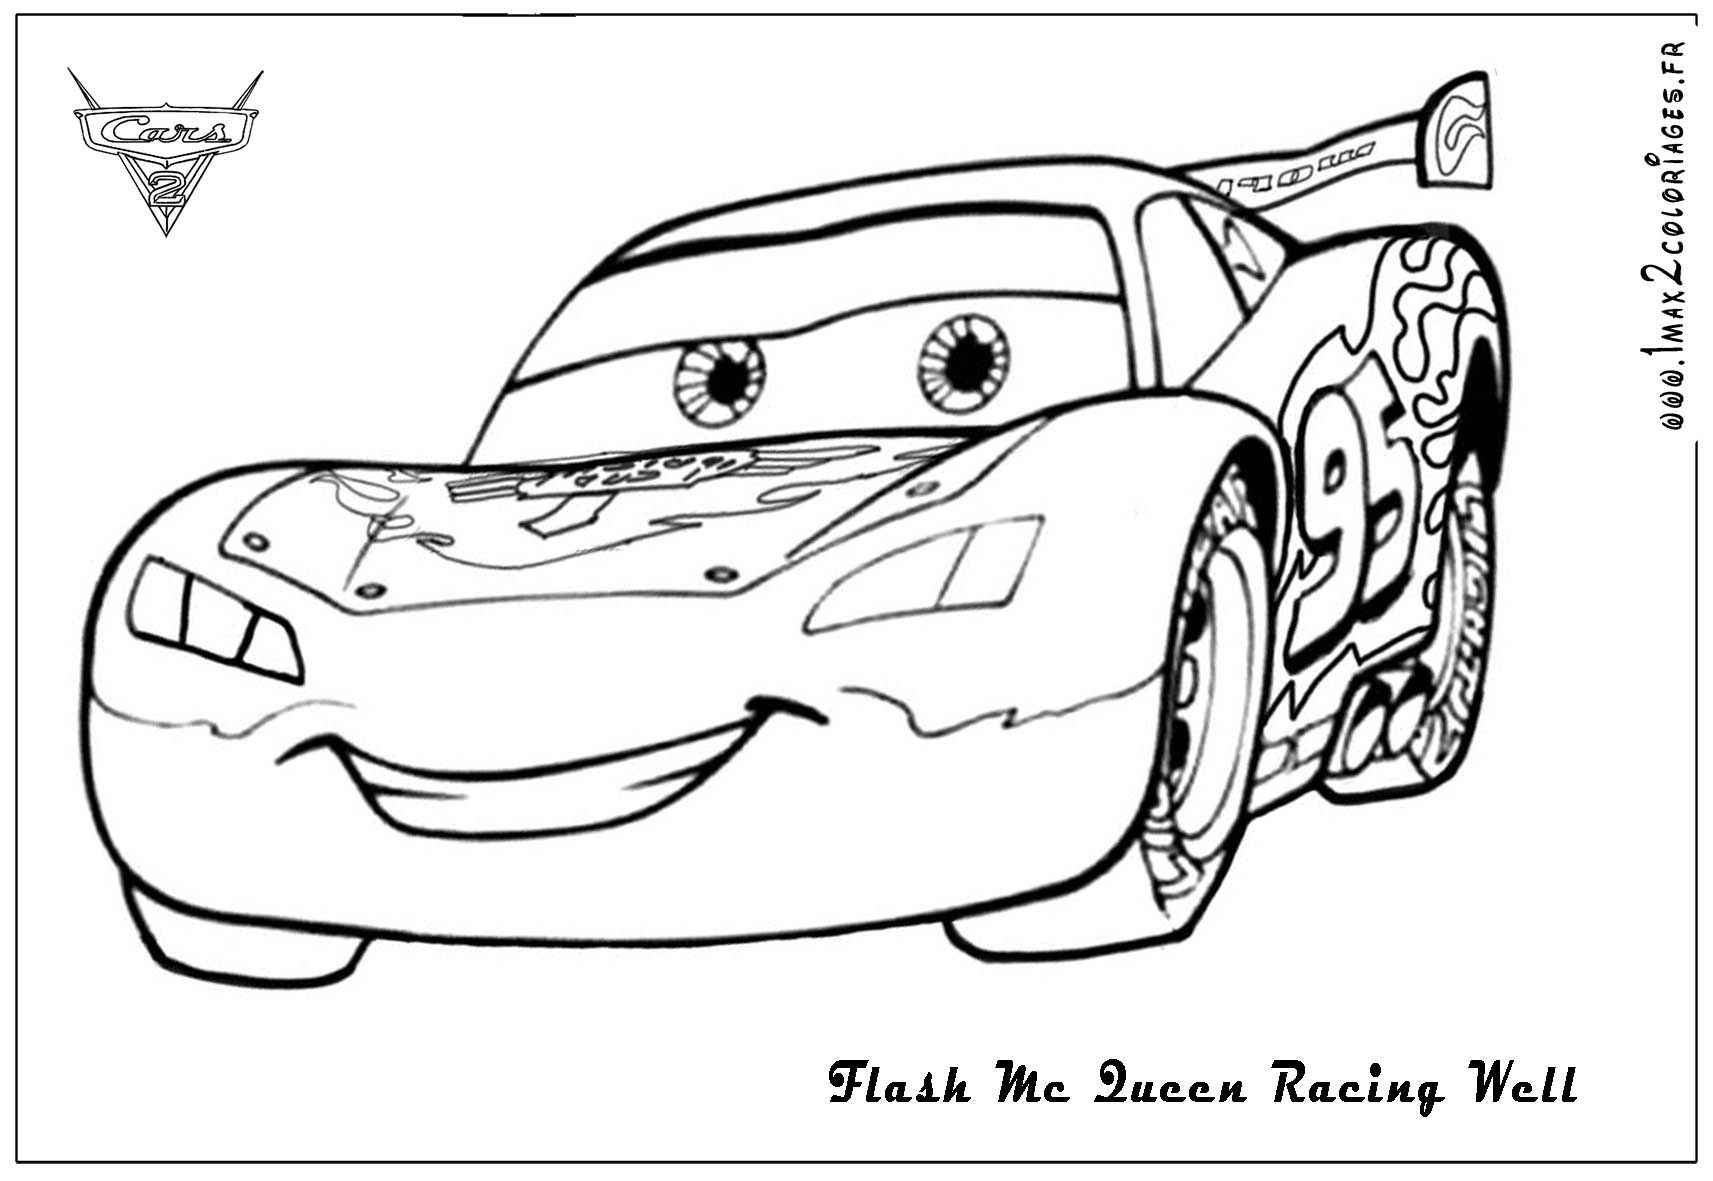 Lightning Mcqueen Coloring Pages Photo 2 Cars Coloring Pages Race Car Coloring Pages Coloring Pages